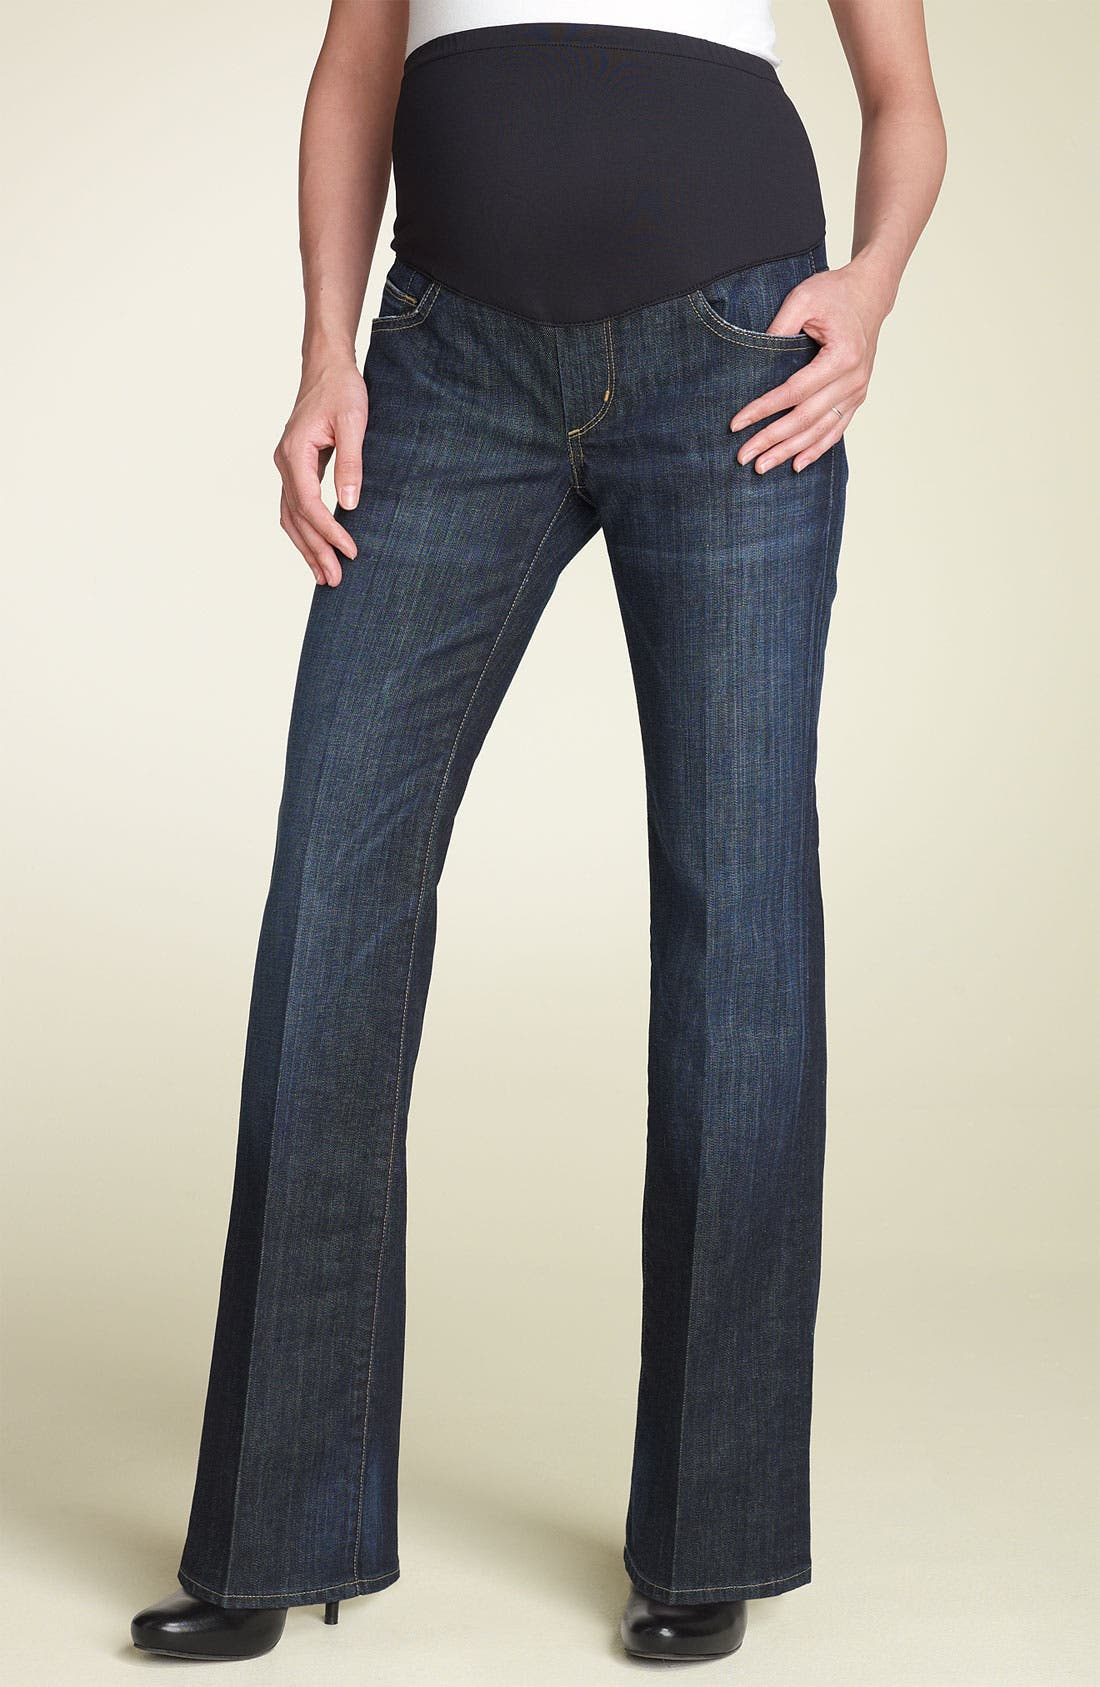 Citizens of Humanity 'Dita' Maternity Jeans (New Pacific) (Petite ...